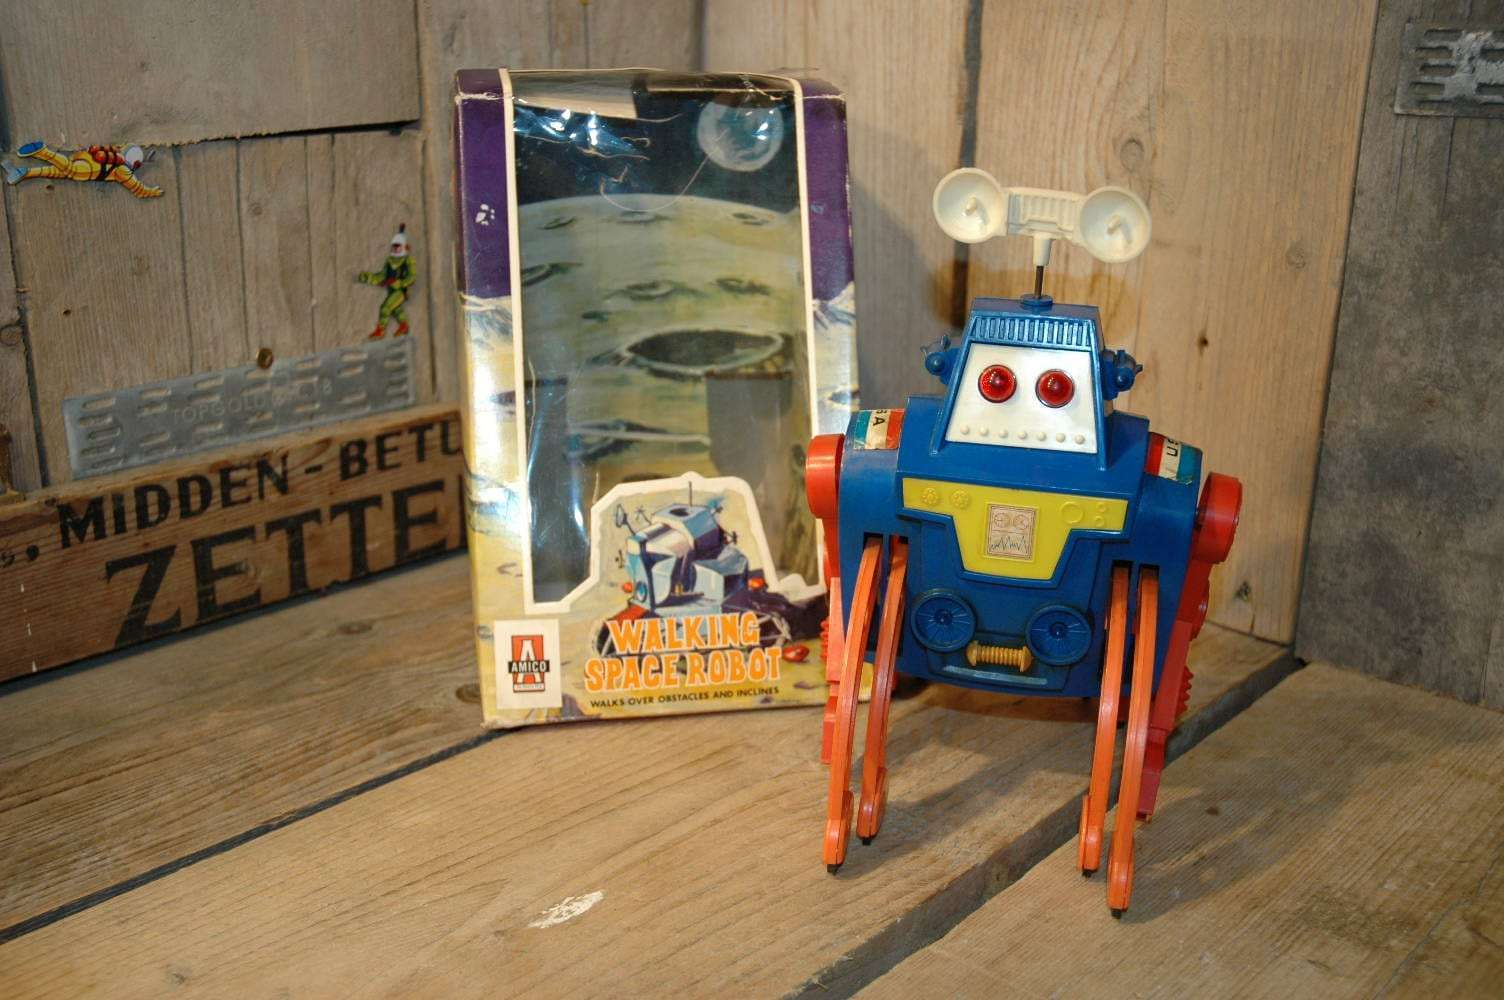 Amico - Walking Space Robot